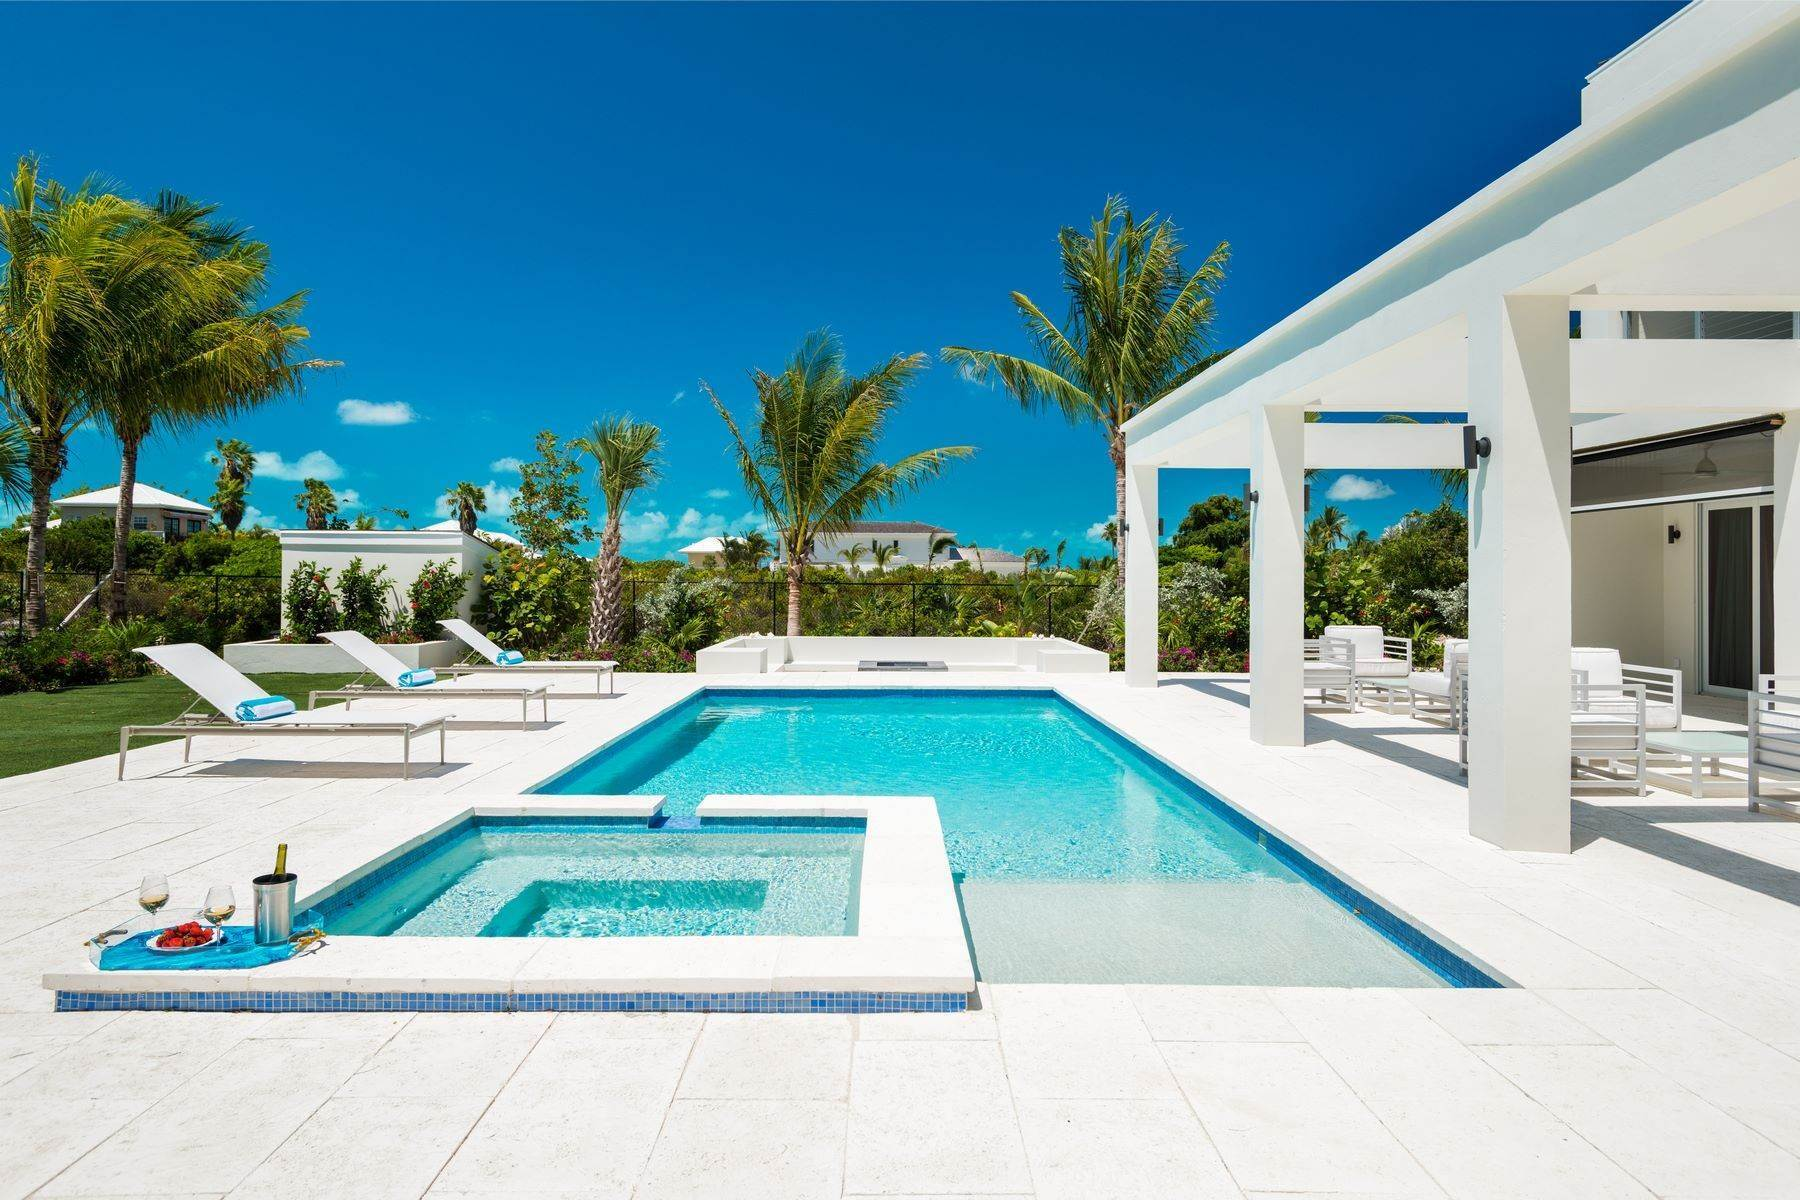 Single Family Homes for Sale at Turquoise Villa Leeward, Providenciales Turks And Caicos Islands